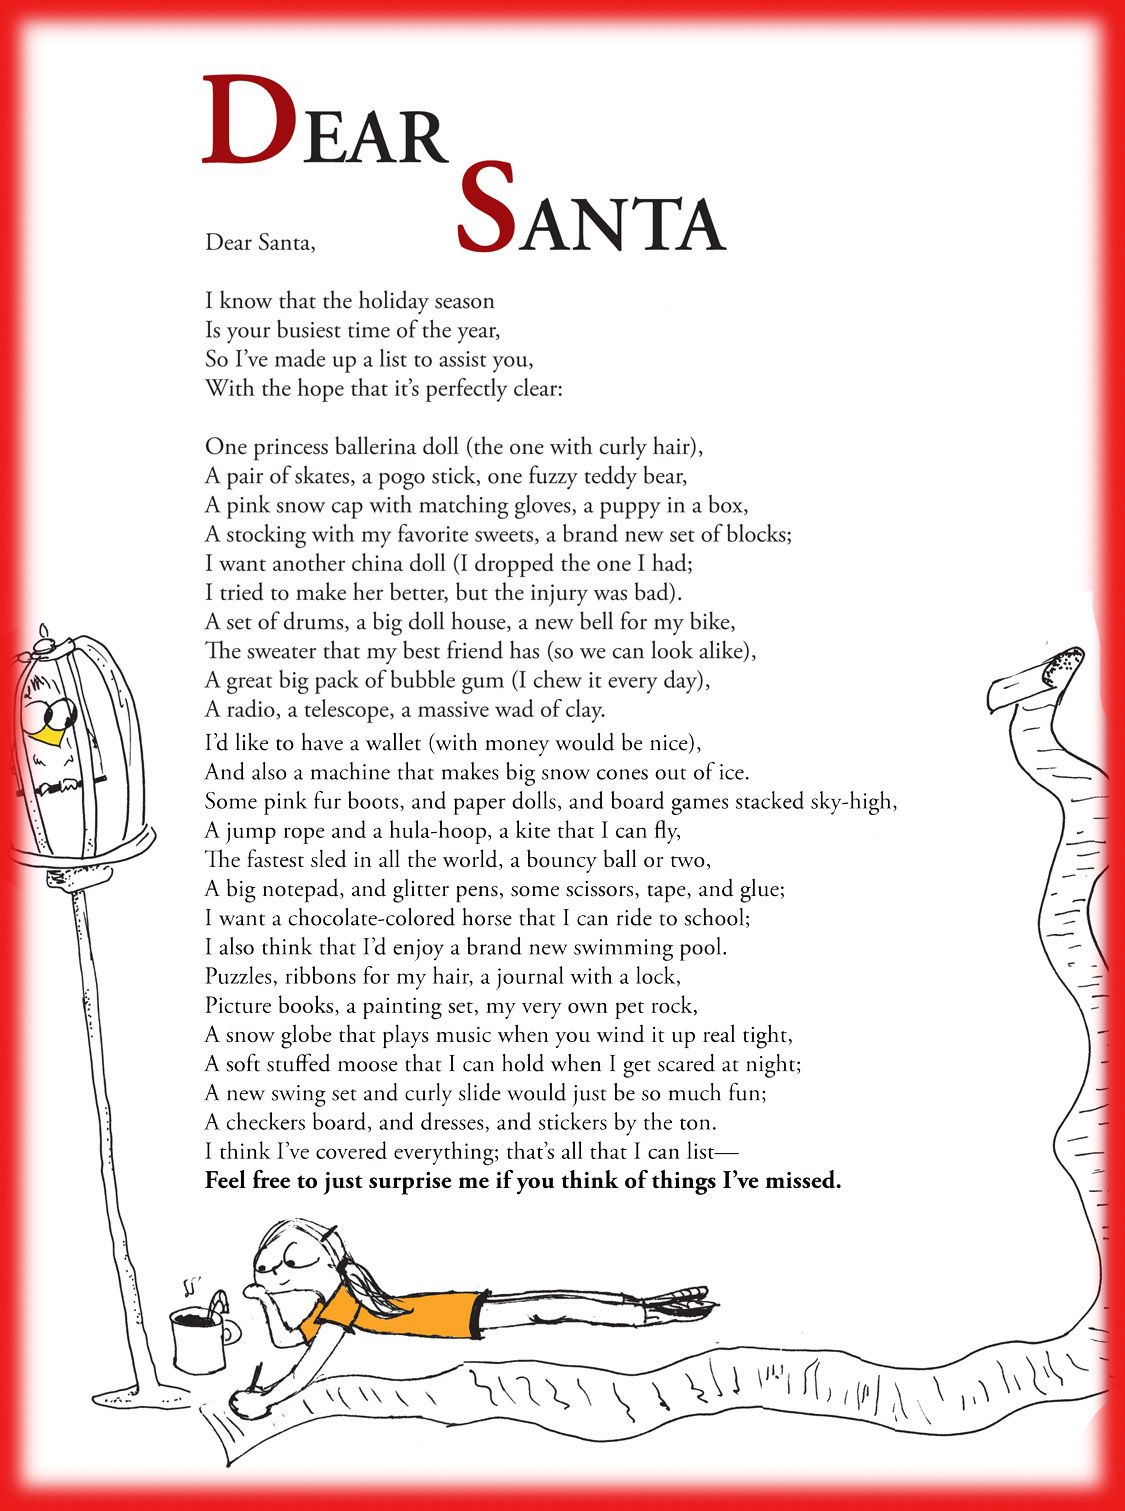 Funny Children S Poem About A Really Long Christmas Wish List To Santa Great For School And